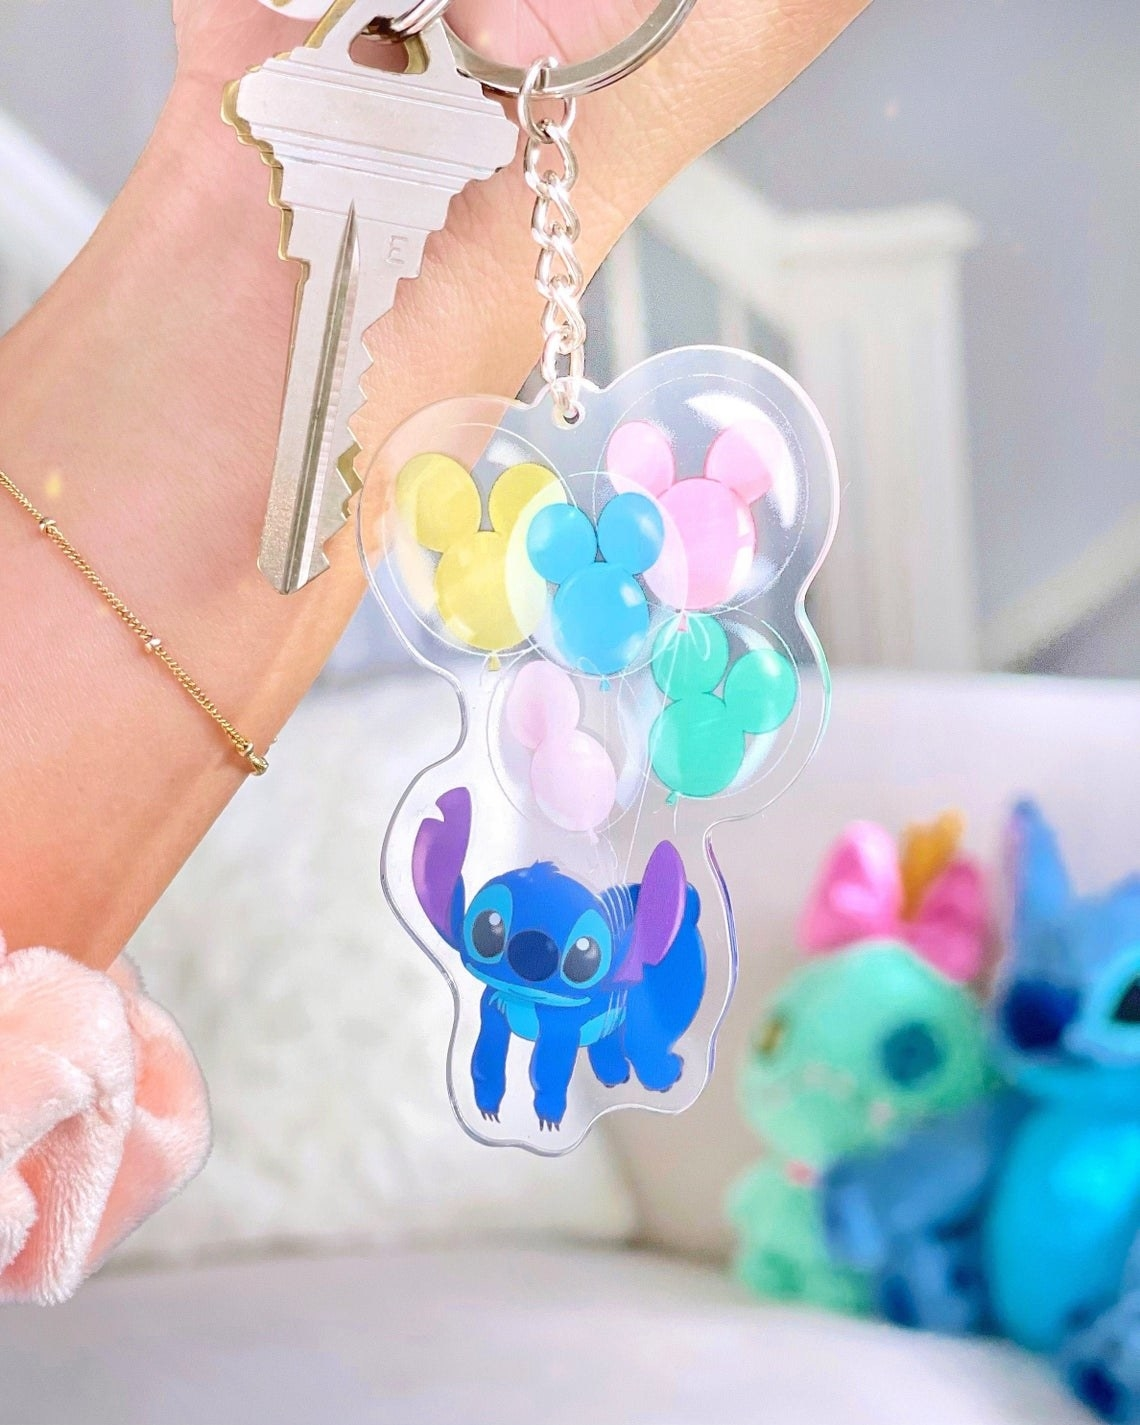 keychain that looks like stitch being carried away by mickey balloons